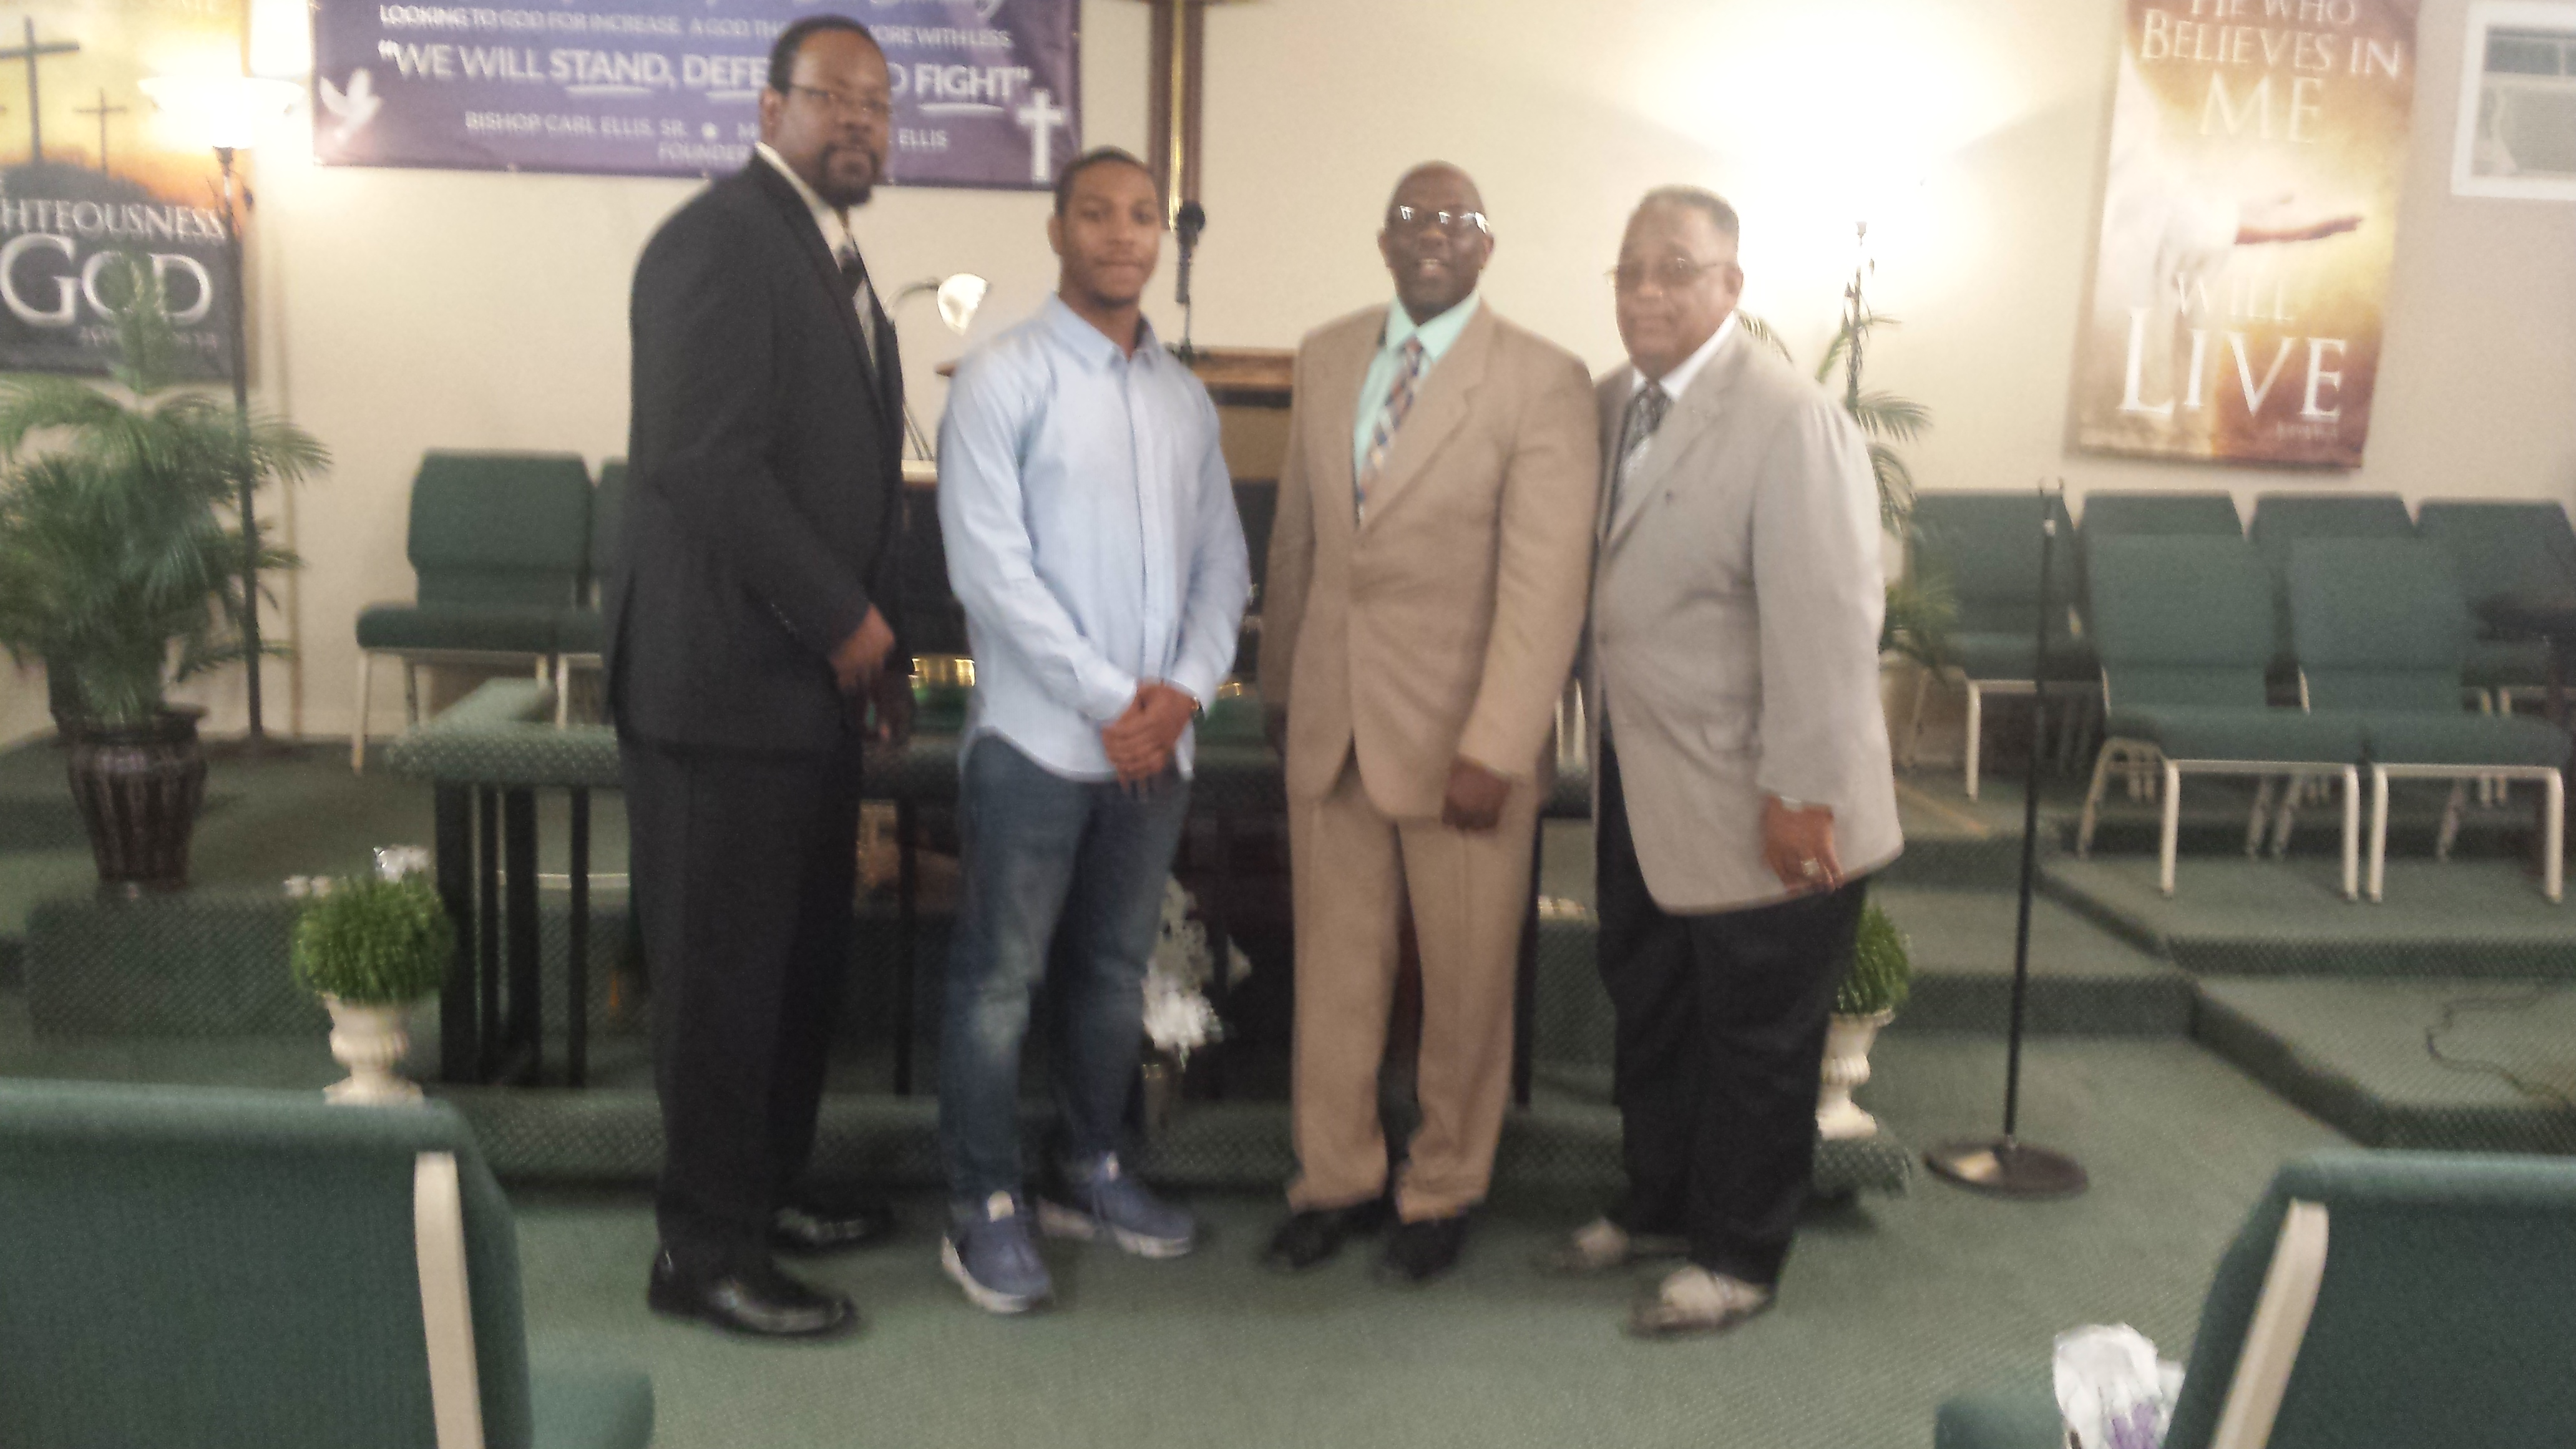 HOUSE OF PRAYER'S FATHERS